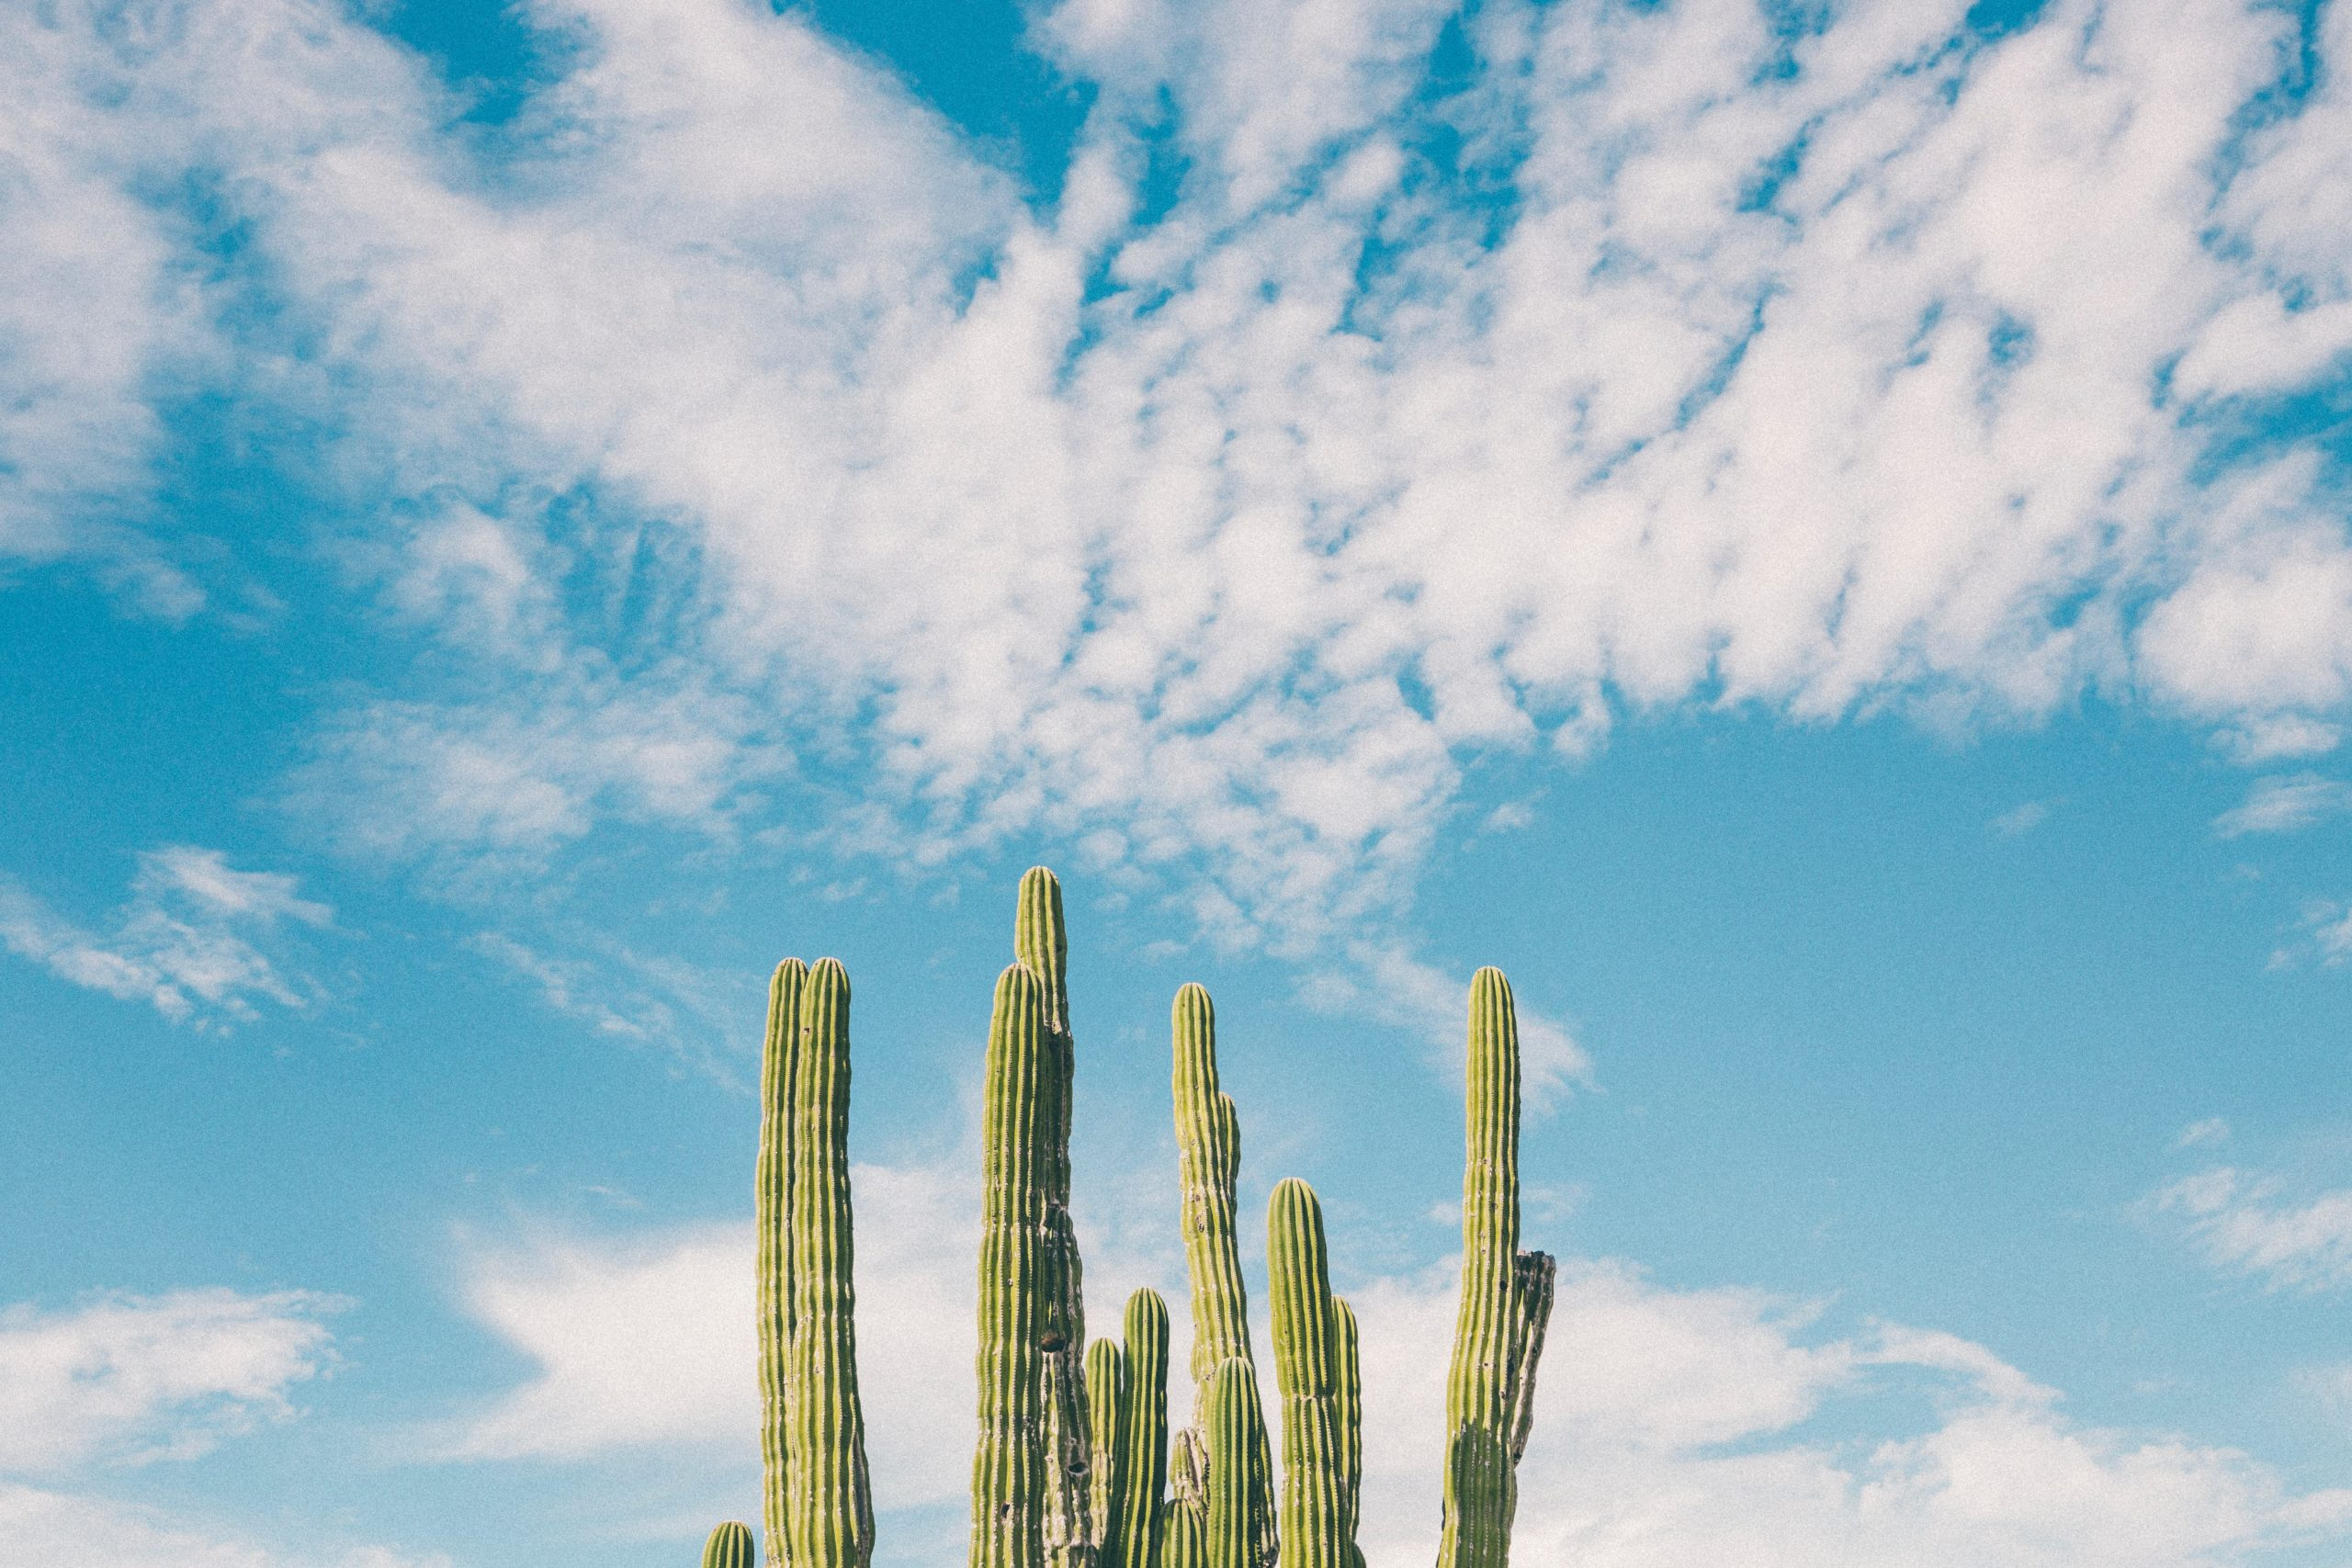 http://A%20bunch%20of%20cacti%20in%20front%20of%20a%20blue%20sky%20with%20clouds